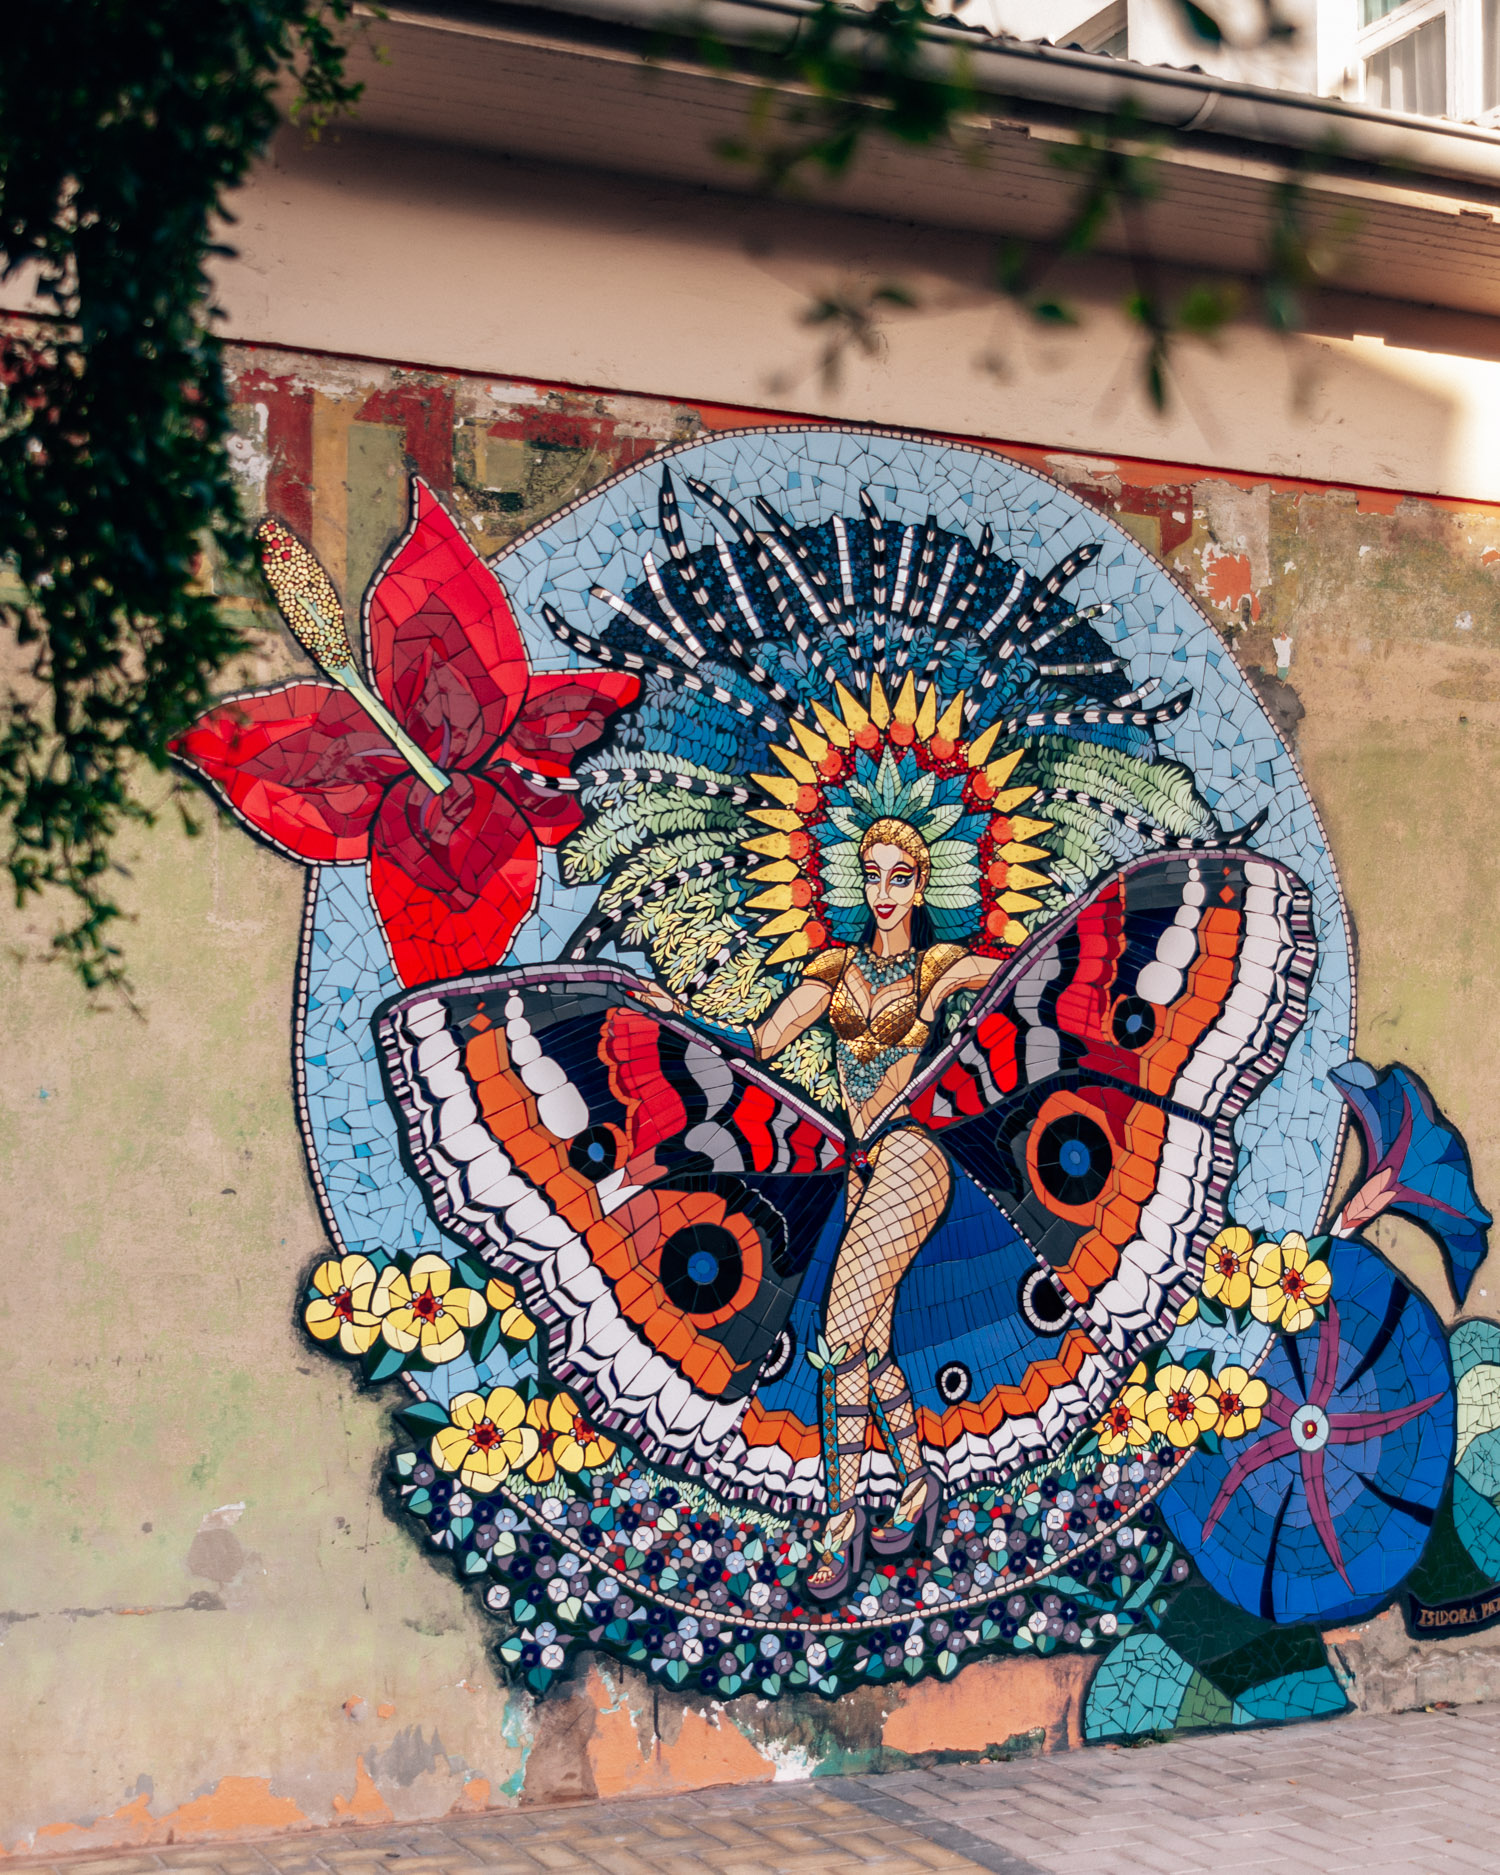 The Ultimate Aruba Travel Guide | Street art mural in San Nicolas